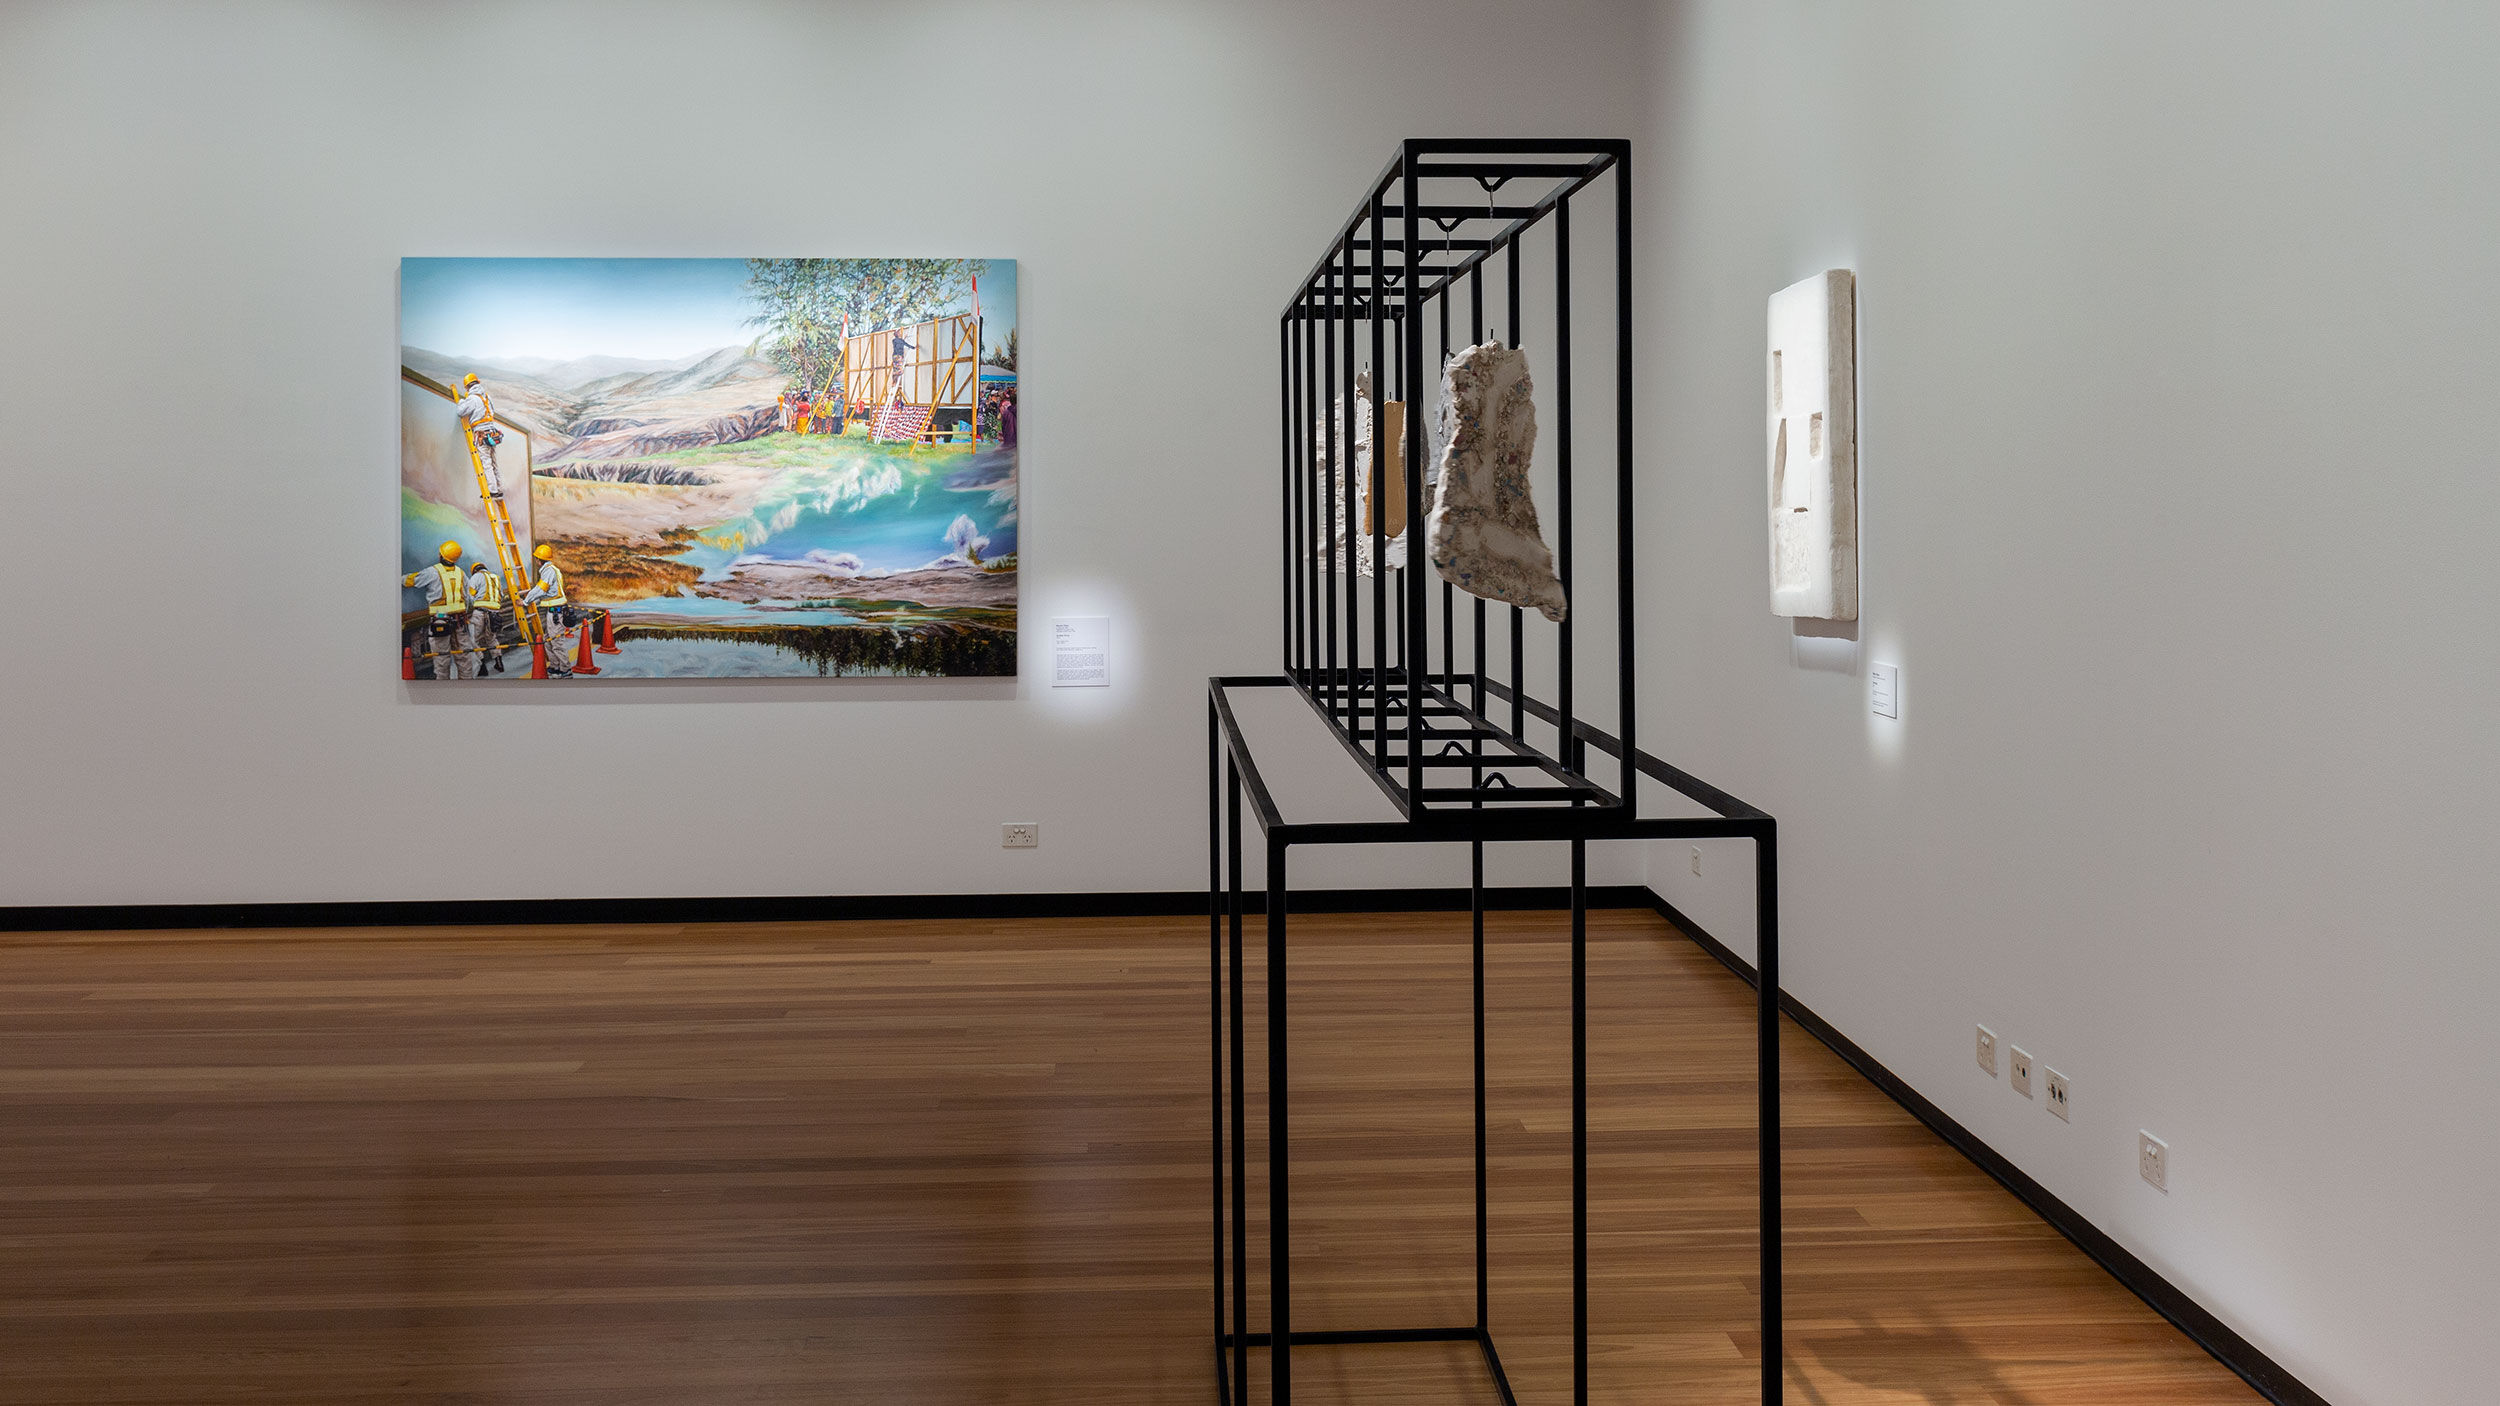 Installation view, 'Shelter in Place', Town Hall Gallery, 2021. Photography by Christian Capurro.